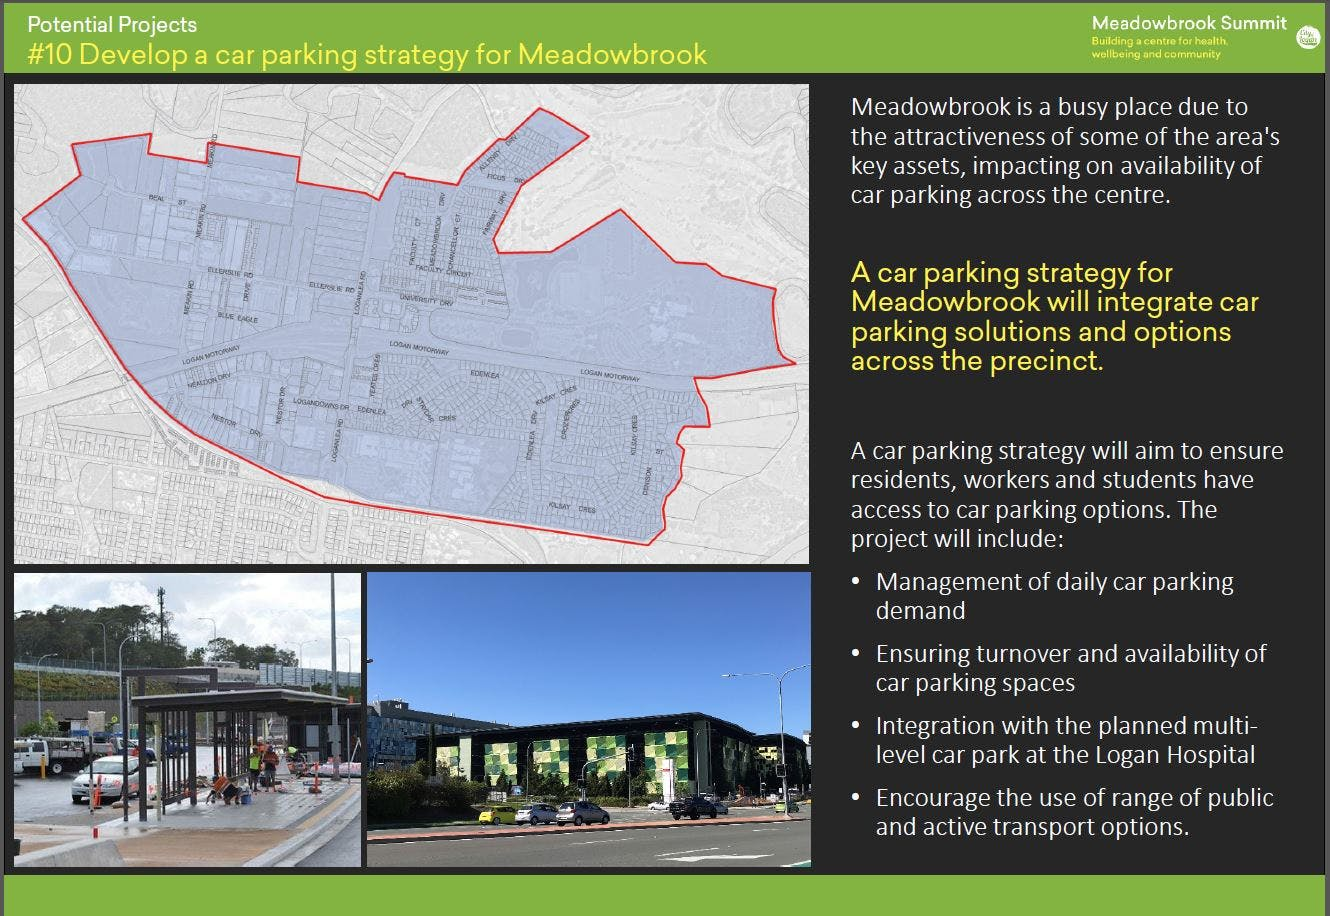 10 Develop a car parking strategy for Meadowbrook